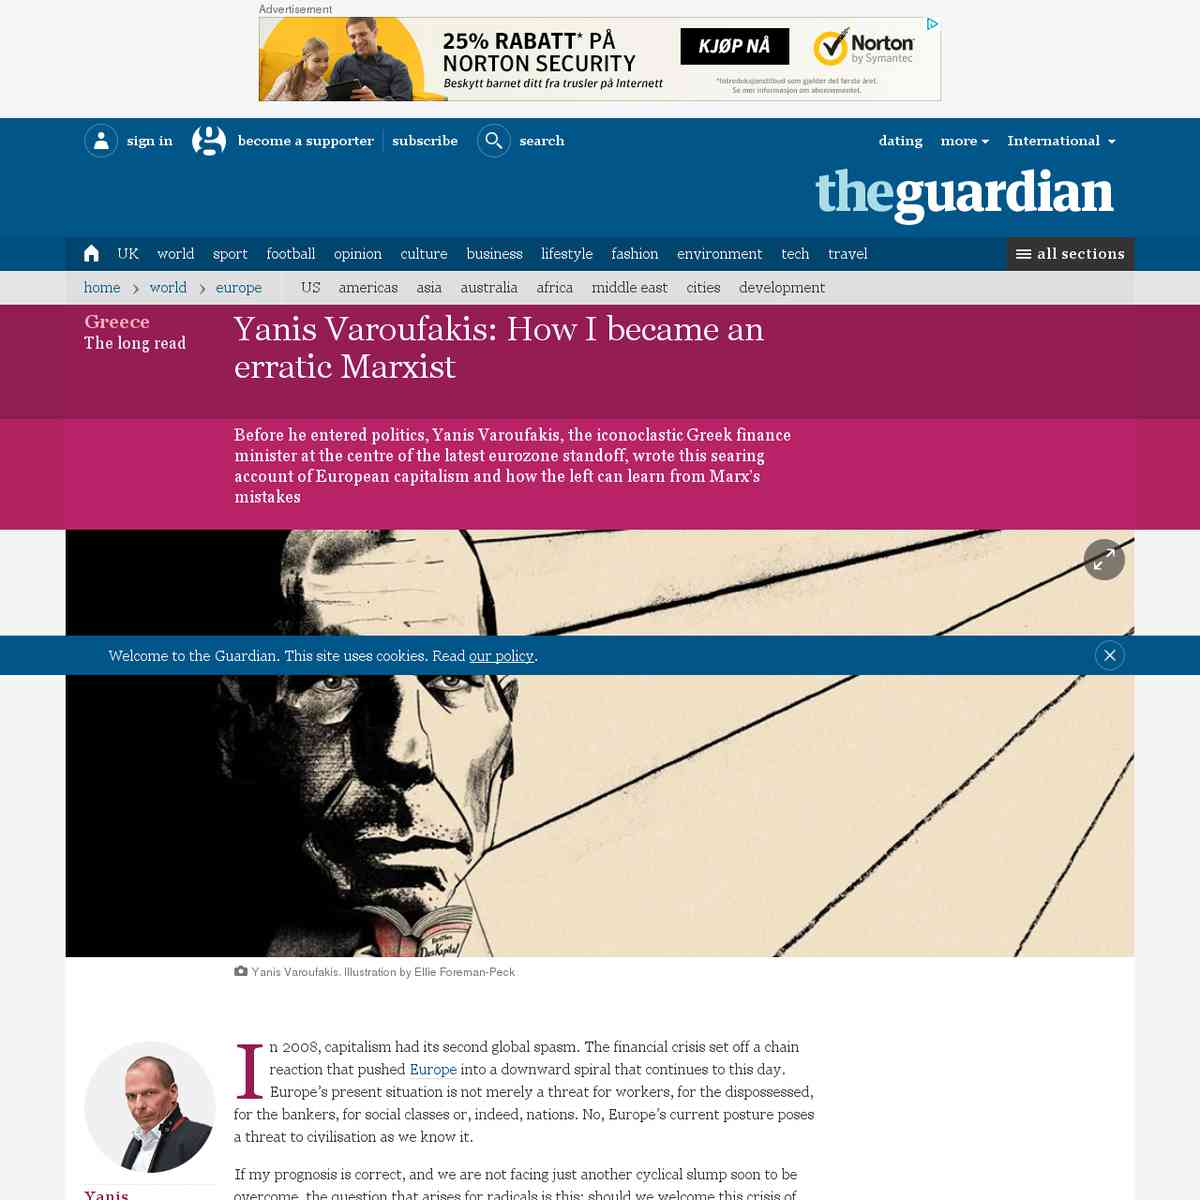 Yanis Varoufakis: How I became an erratic Marxist | News | The Guardian